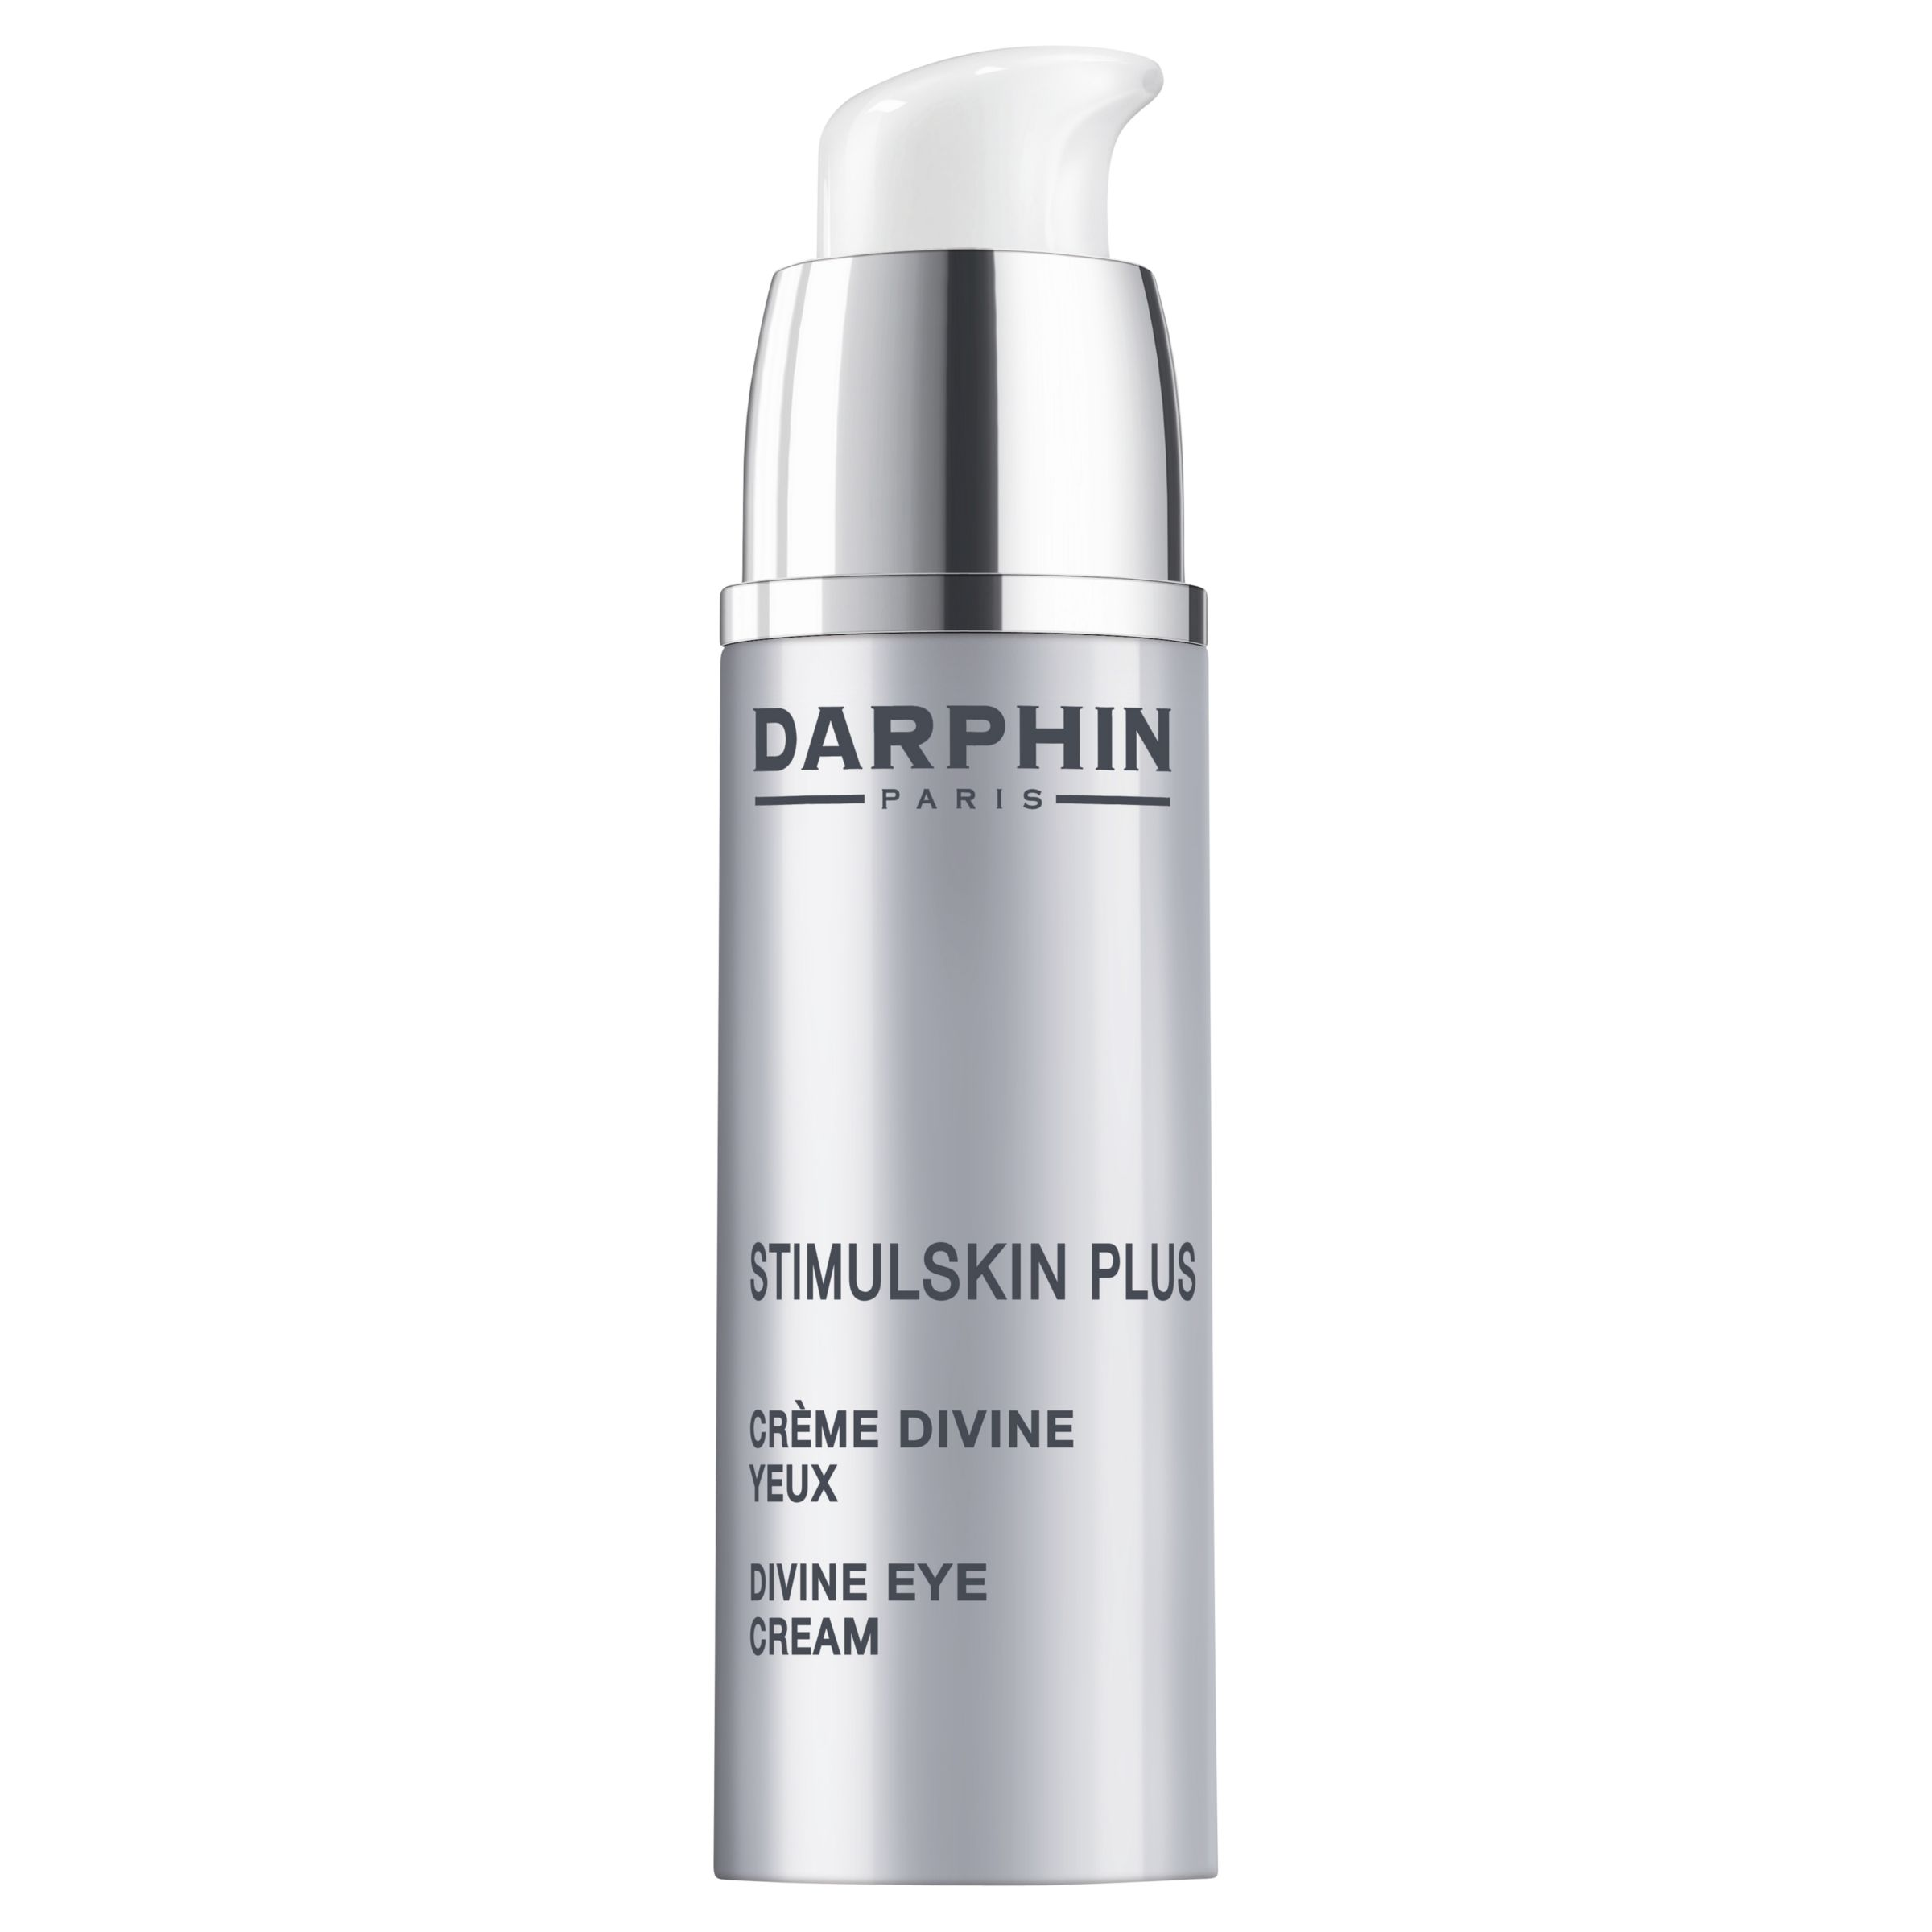 Darphin Darphin Stimulskin Plus Divine Eye Cream, 15ml